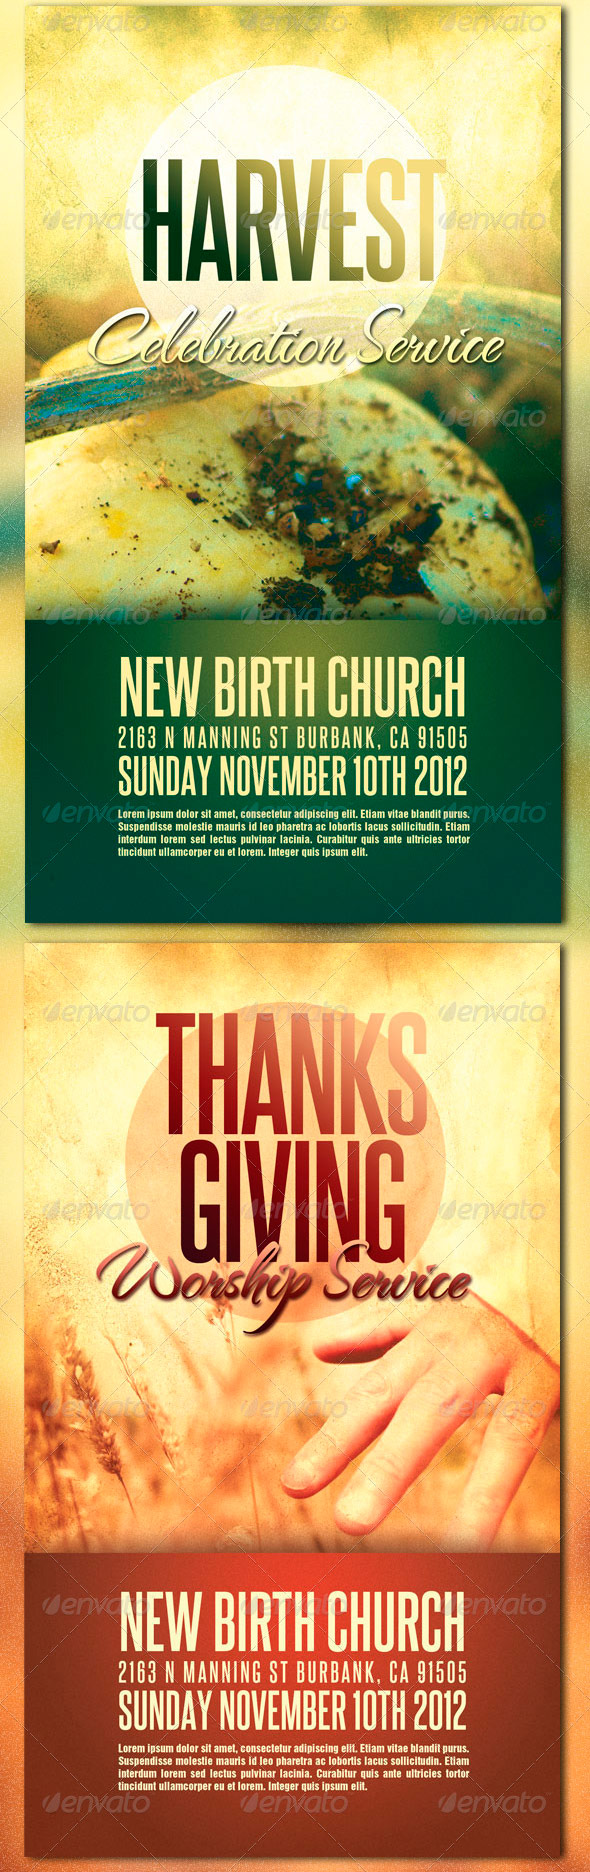 beautiful harvest and thanksgiving flyer templates